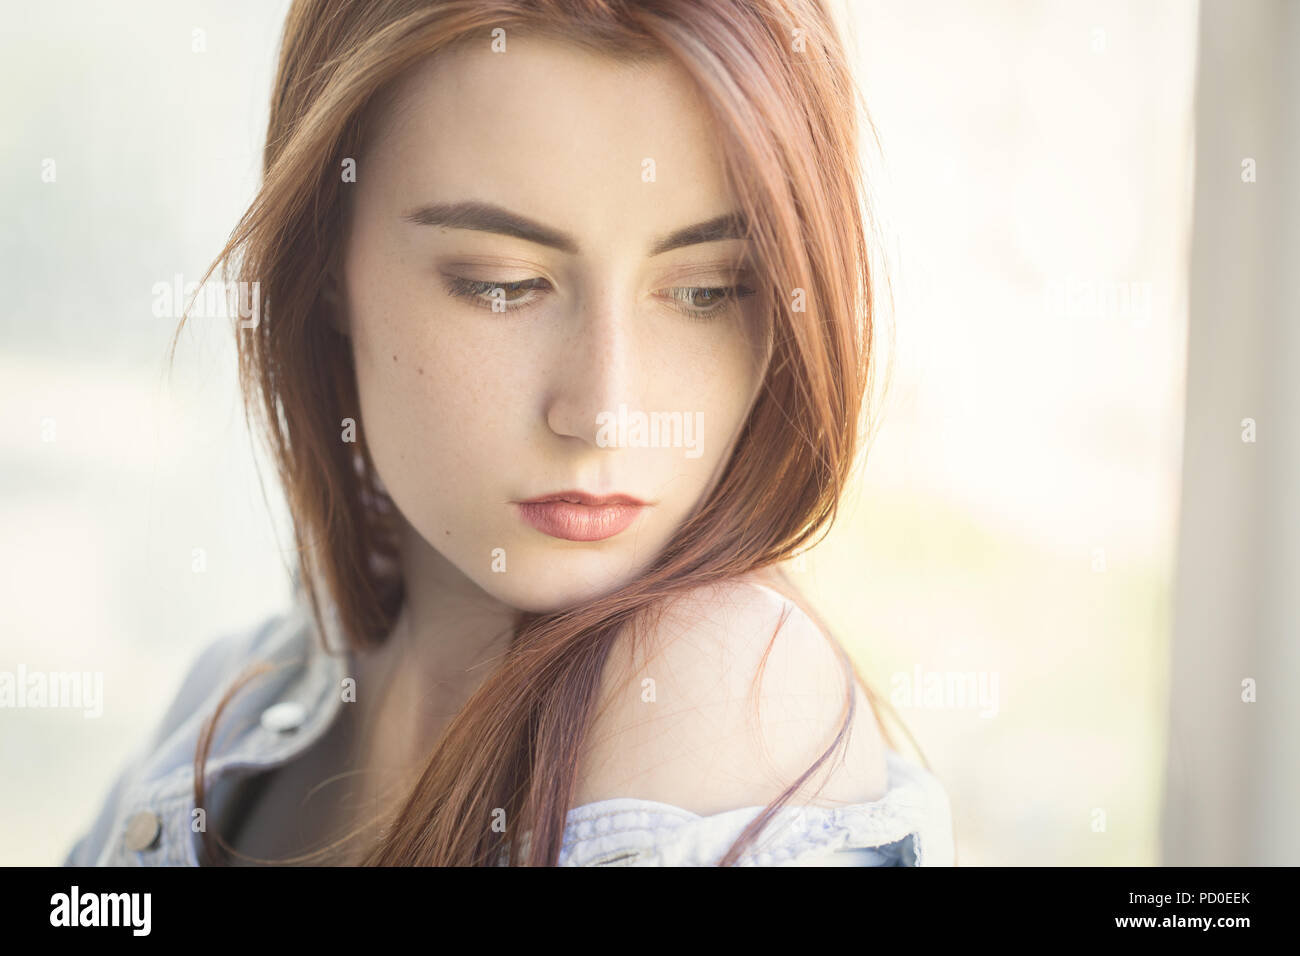 pensive woman with red hair and bare shoulder thinker near window looking aside - Stock Image